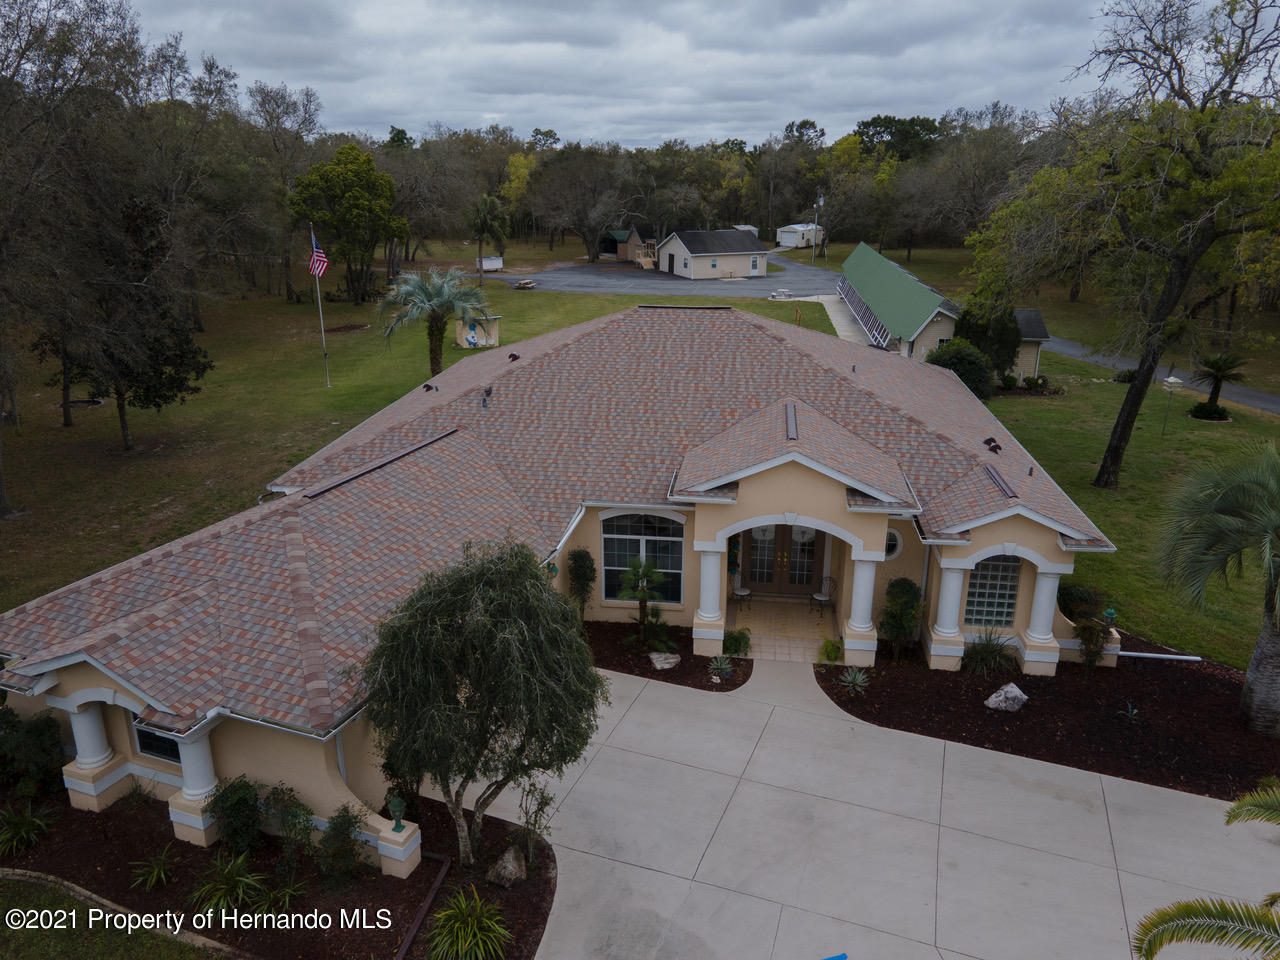 Details for 11410 Hexam Road, Weeki Wachee, FL 34613